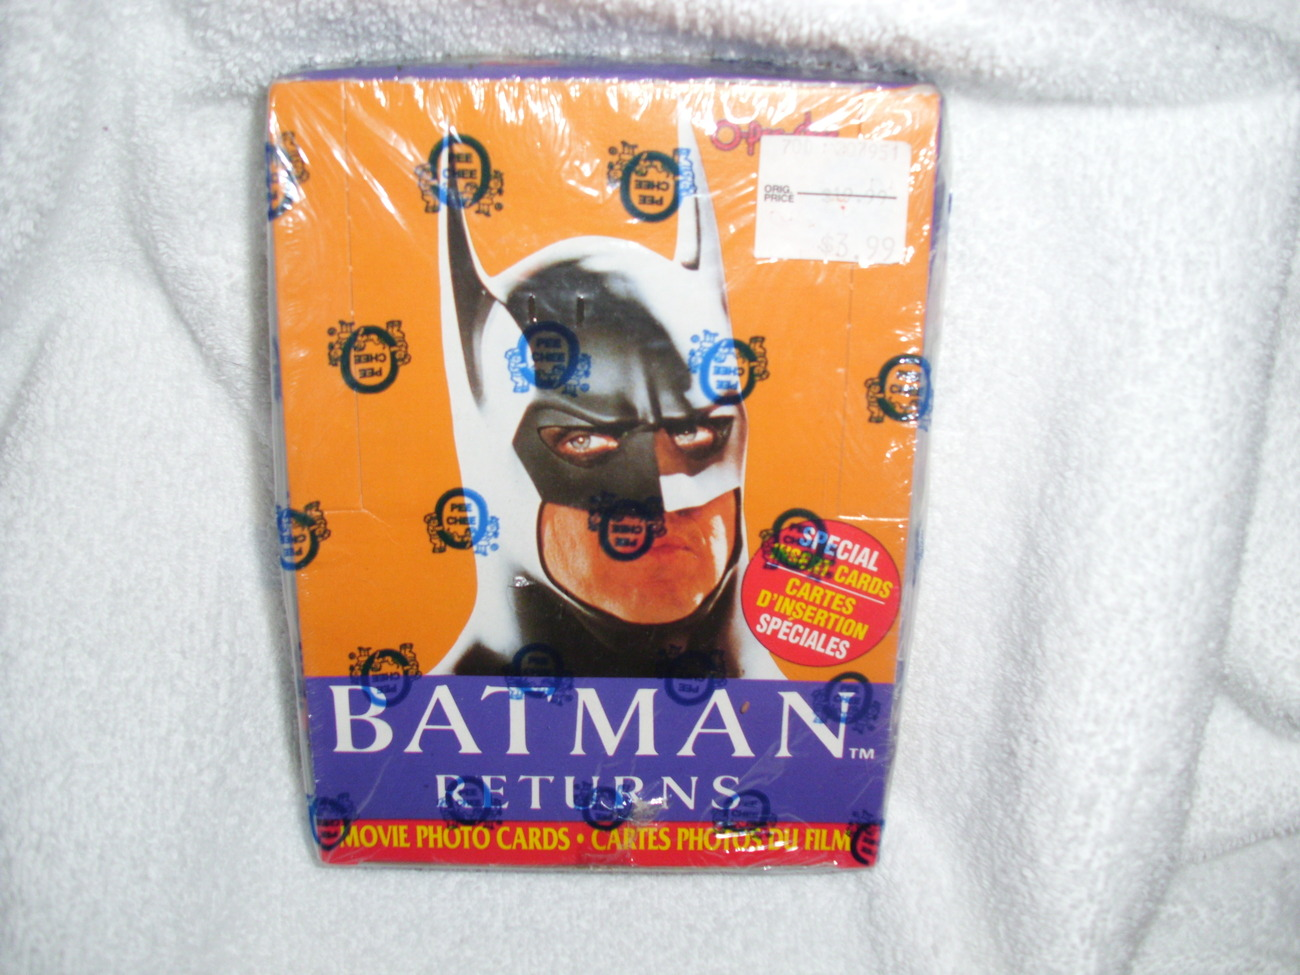 Batman Returns Movie Photo Cards